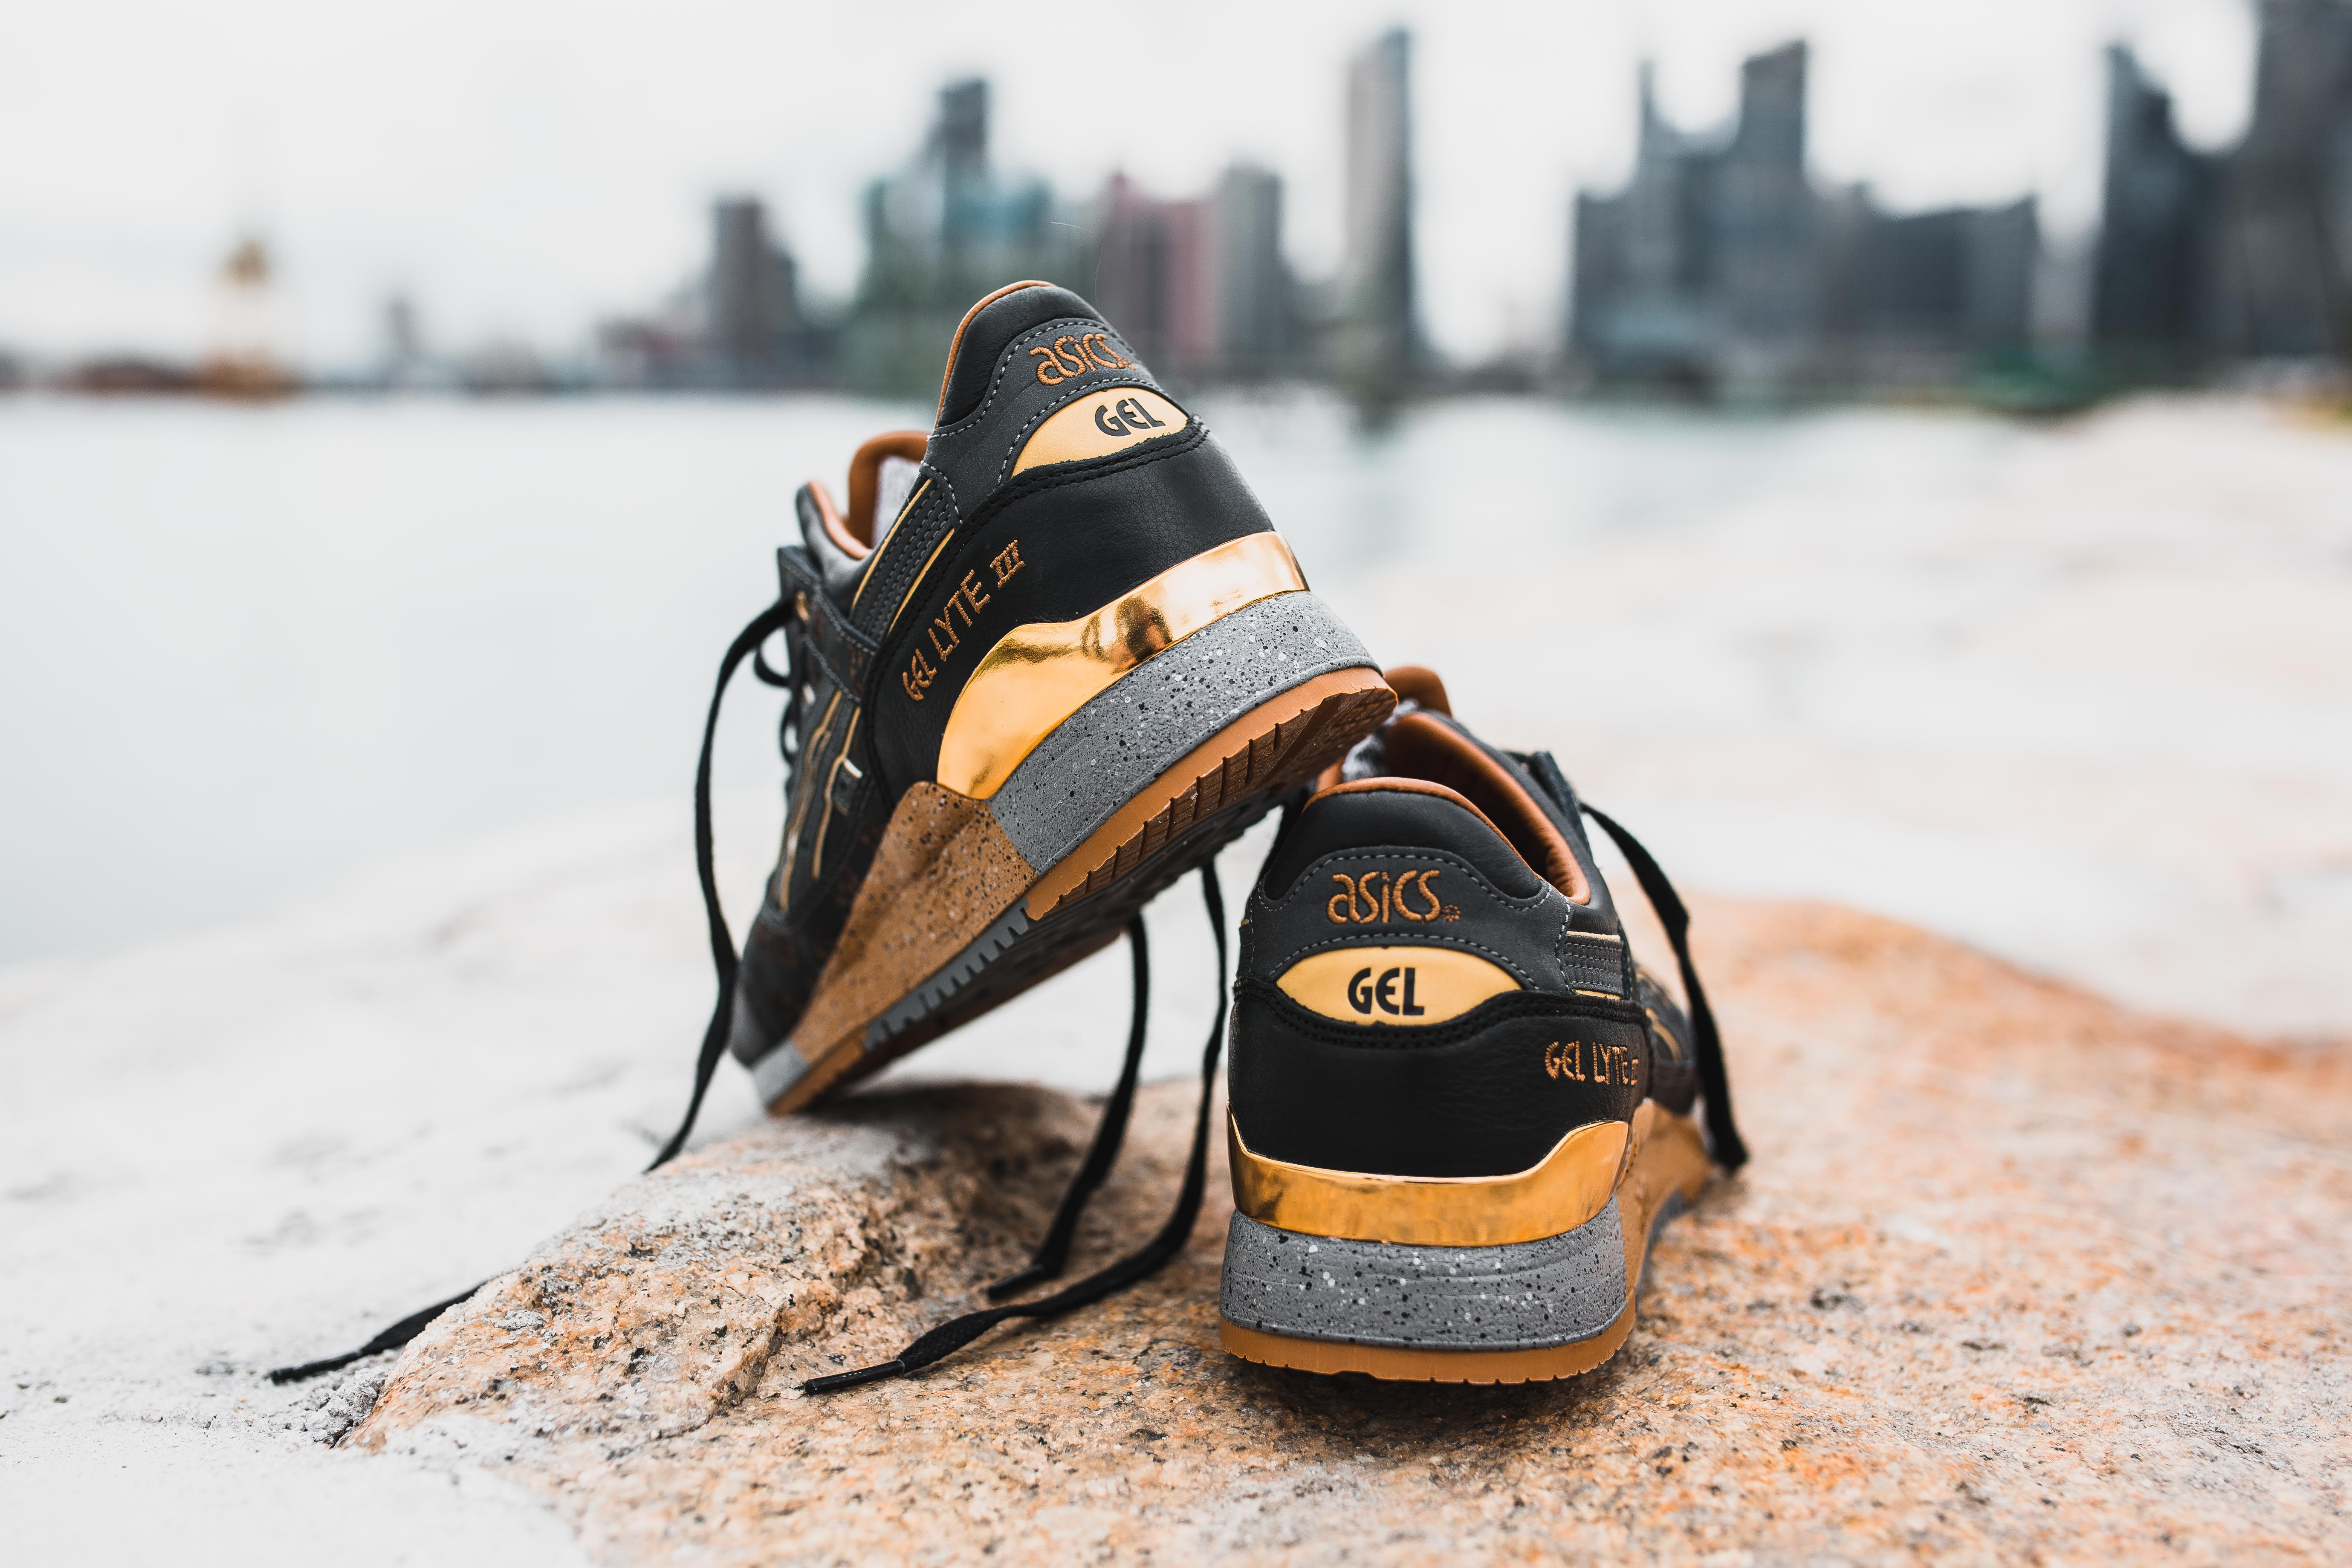 6661eb46723b0 LIMITED EDT X ASICS GEL-LYTE VANDA PACK - MASSES